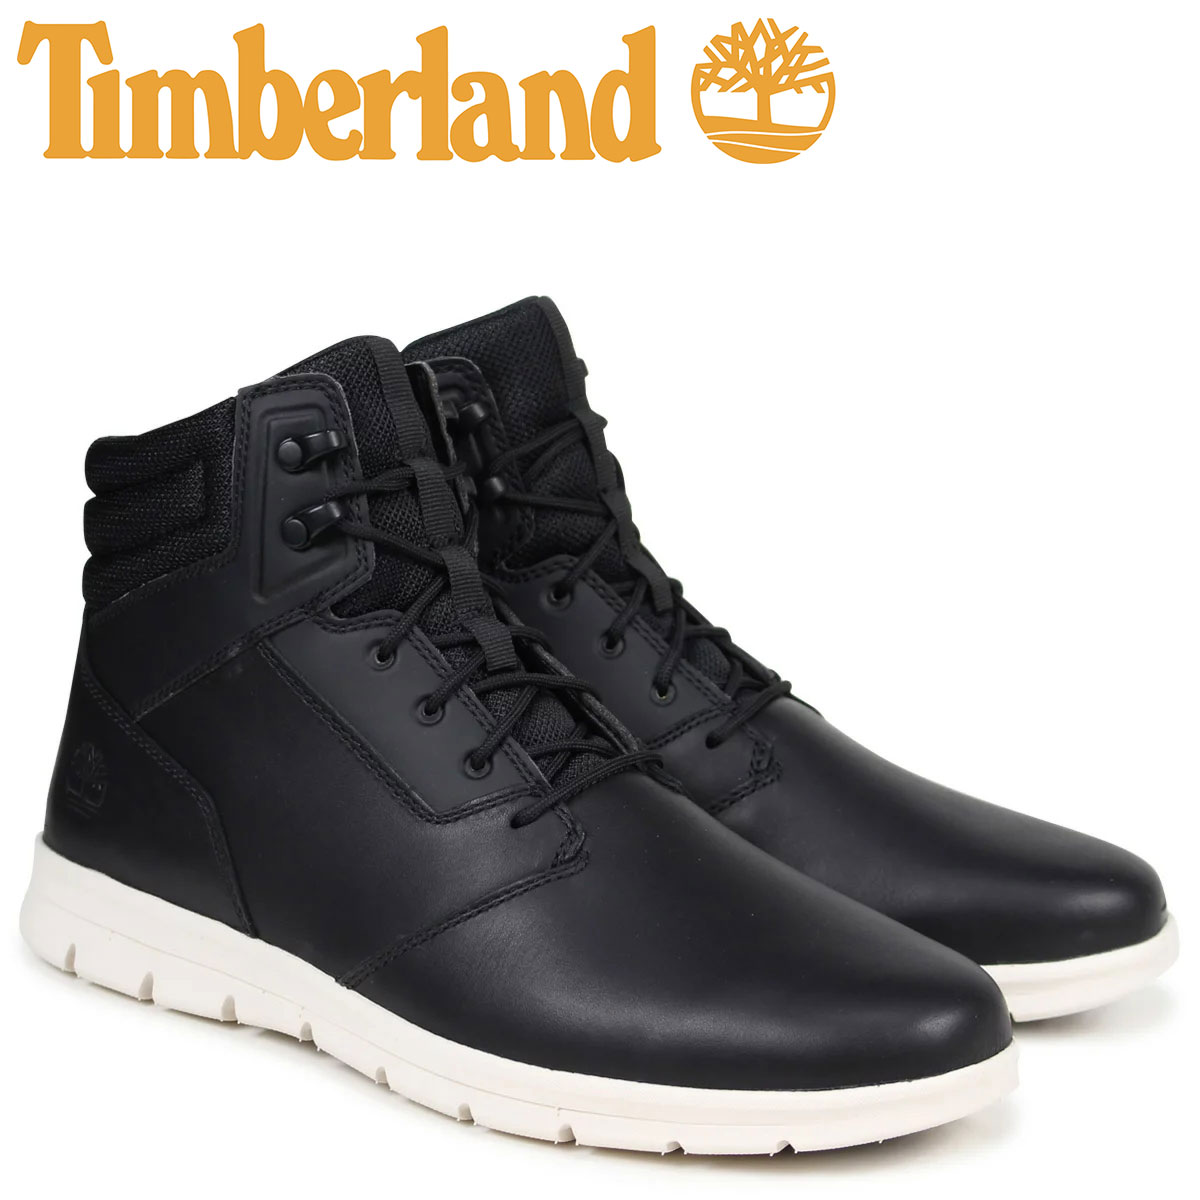 Timberland Timberland sneakers boots men GRAYDON WATER RESISTANT A1HWC W Wise black